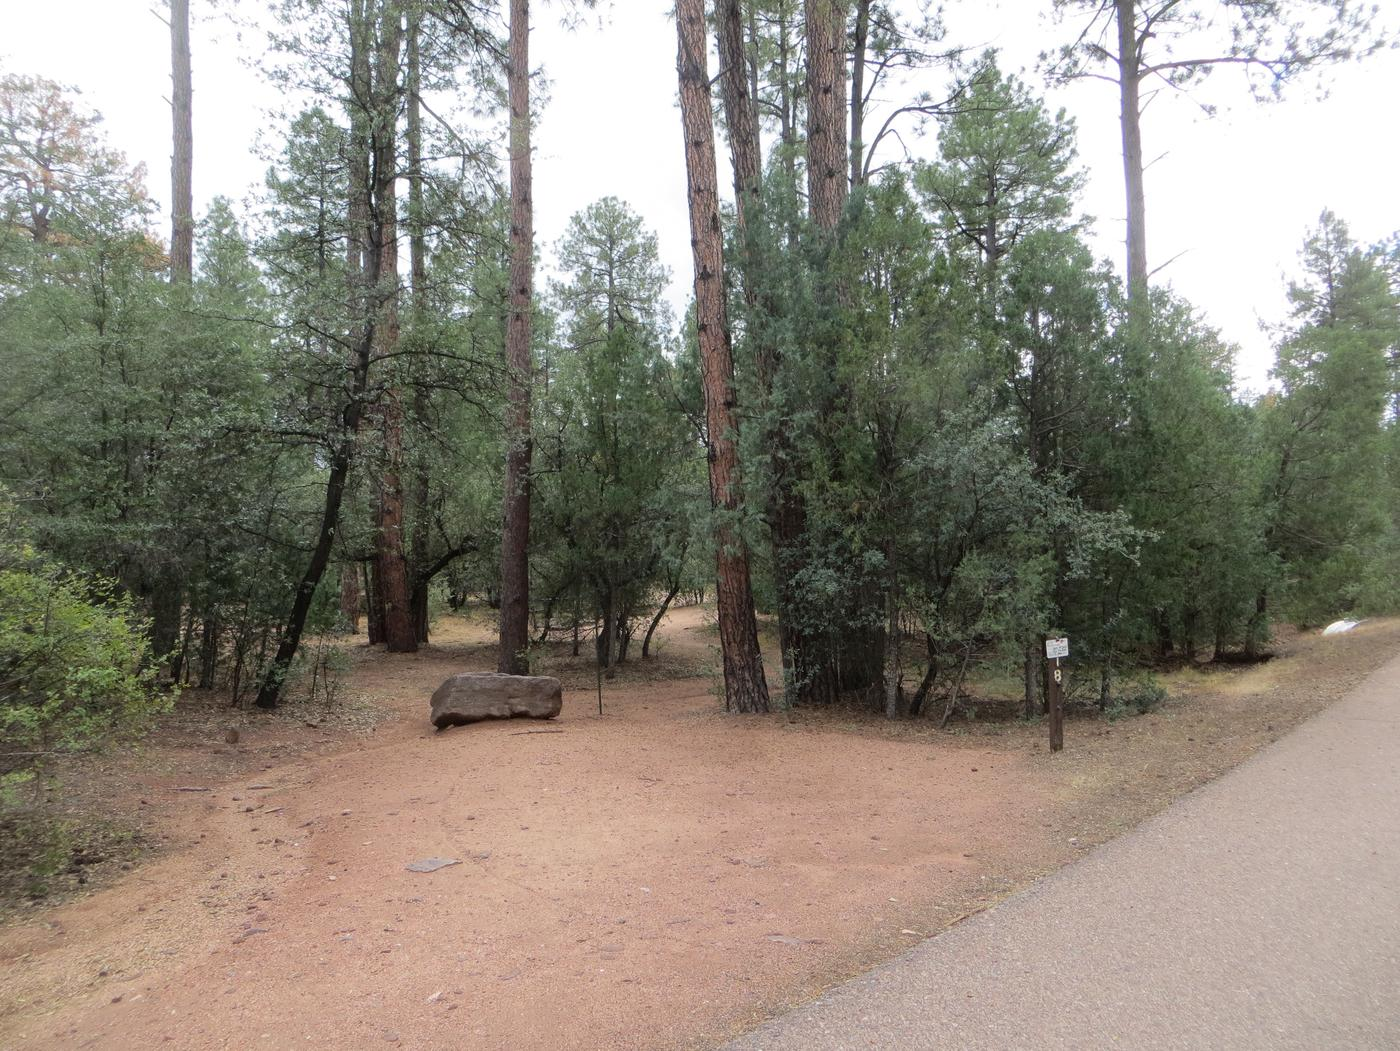 Houston Mesa, Black Bear Loop site #18 featuring parking, entrance to the wooded site, and picnic table.